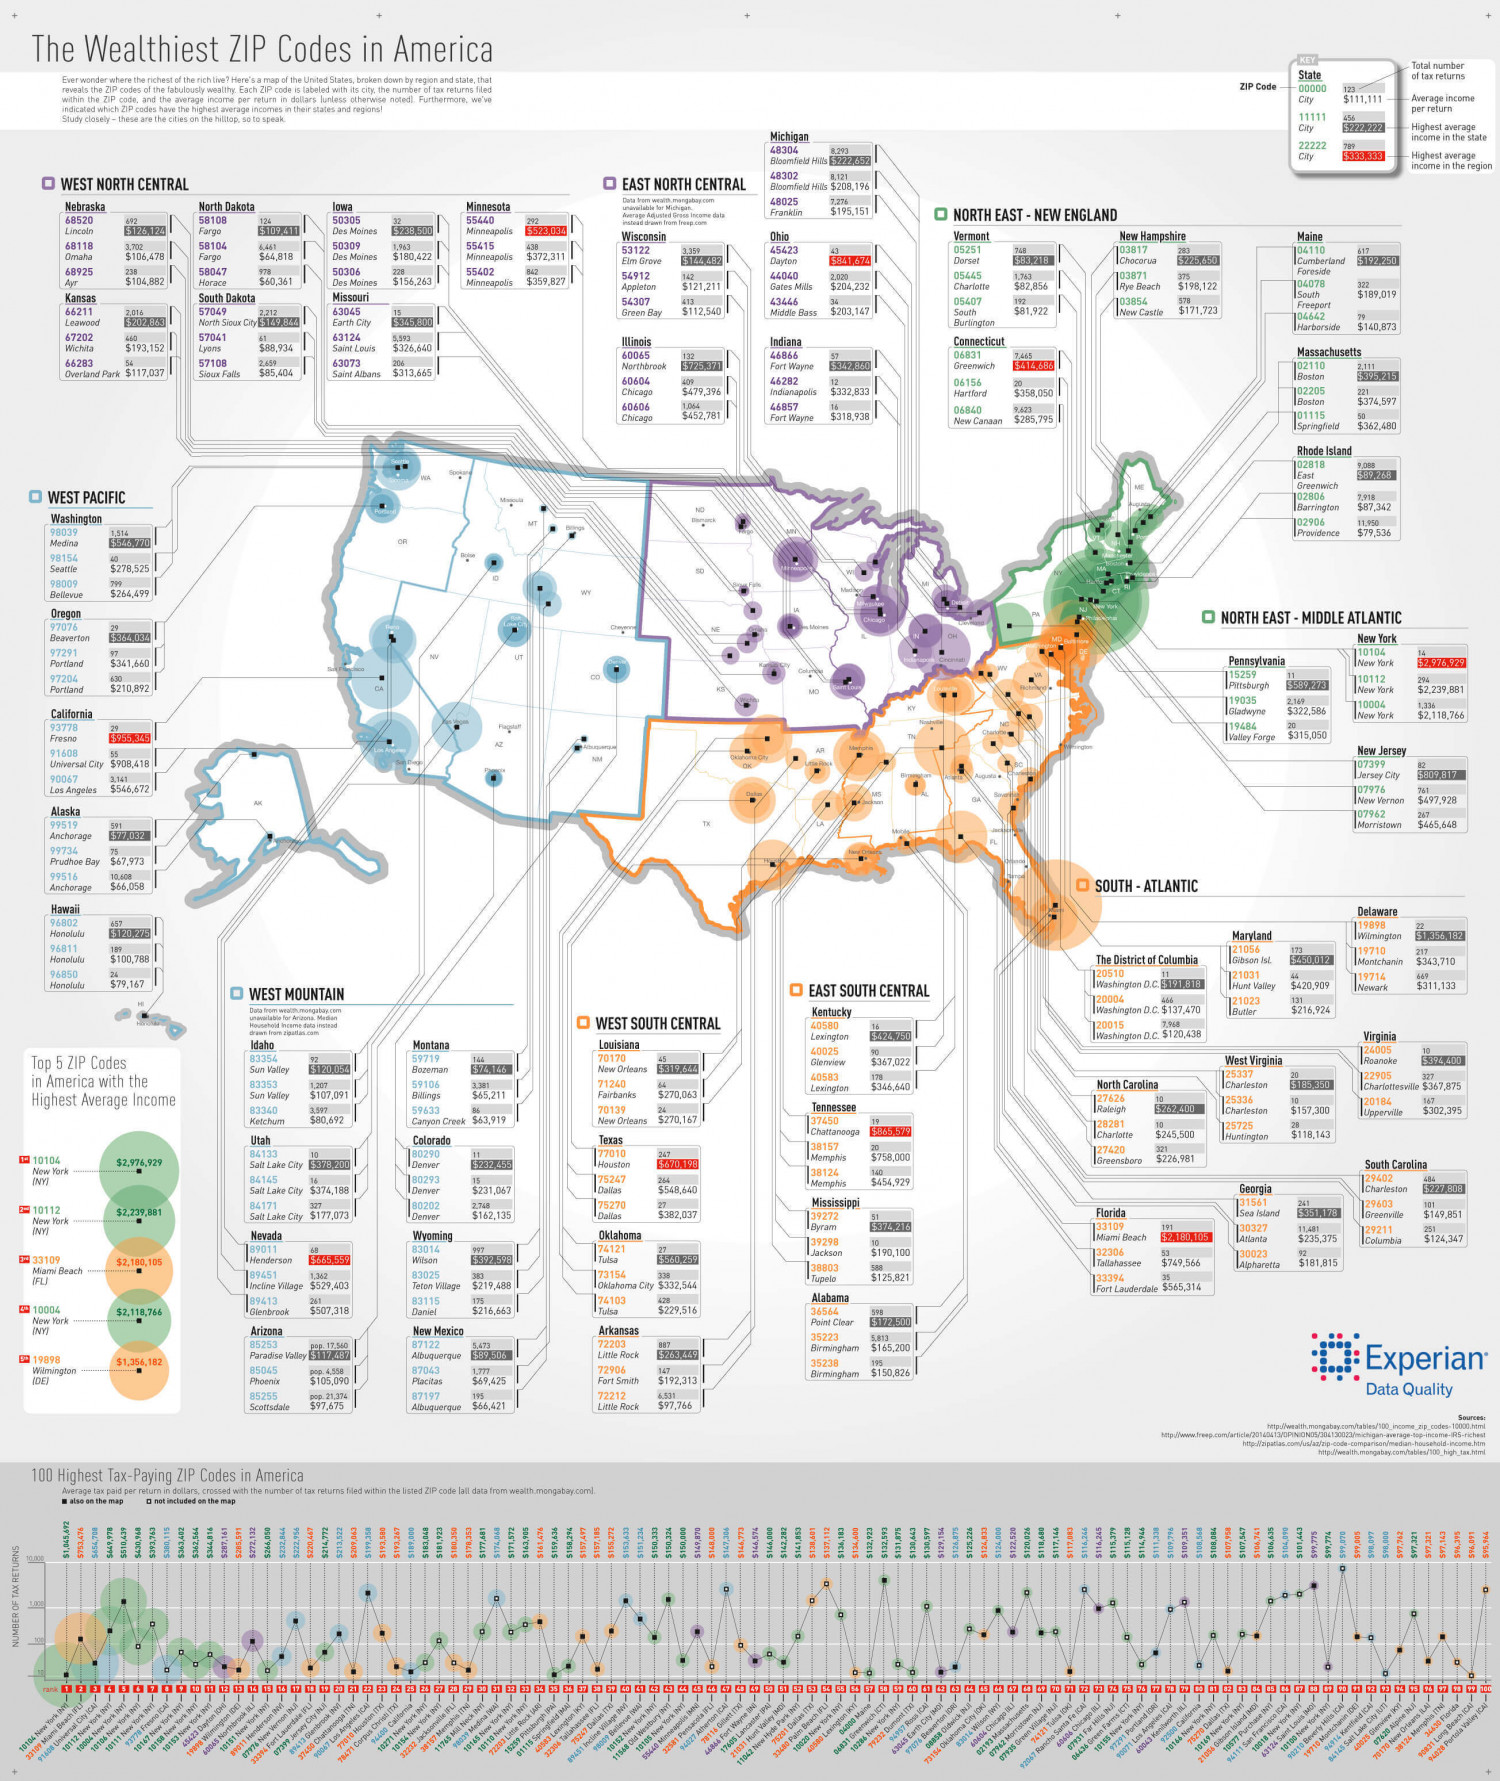 The Wealthiest Zip Codes in America Infographic